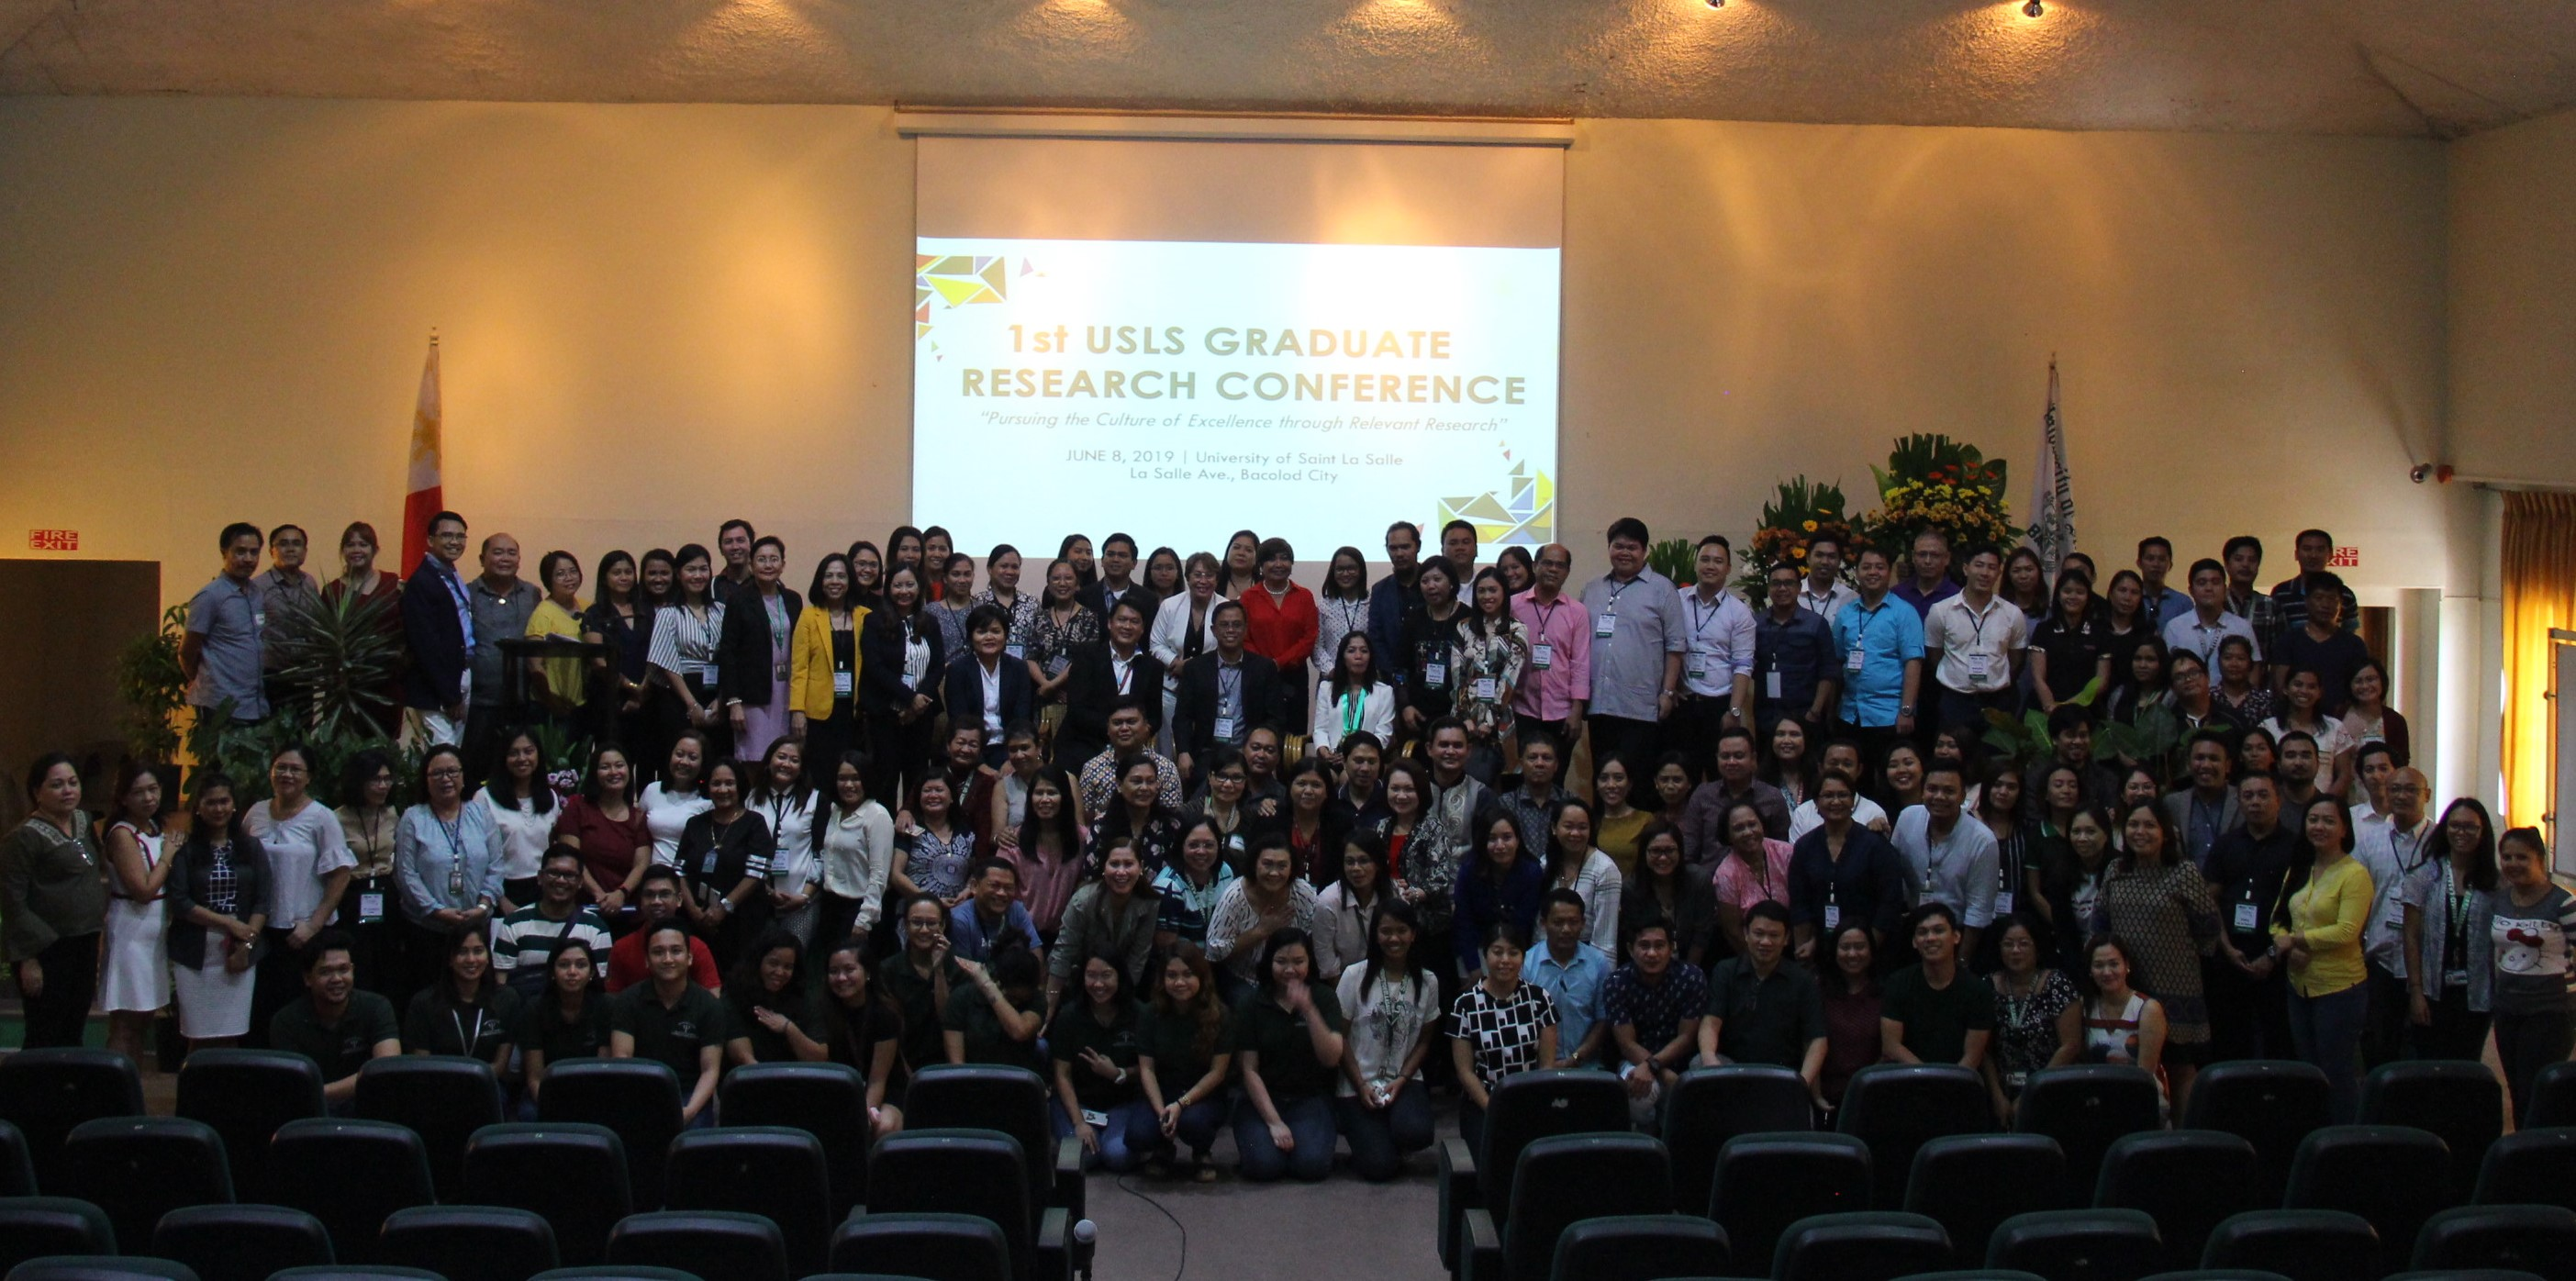 USLS-holds-the-1st-Graduate-Research-Conference.jpg